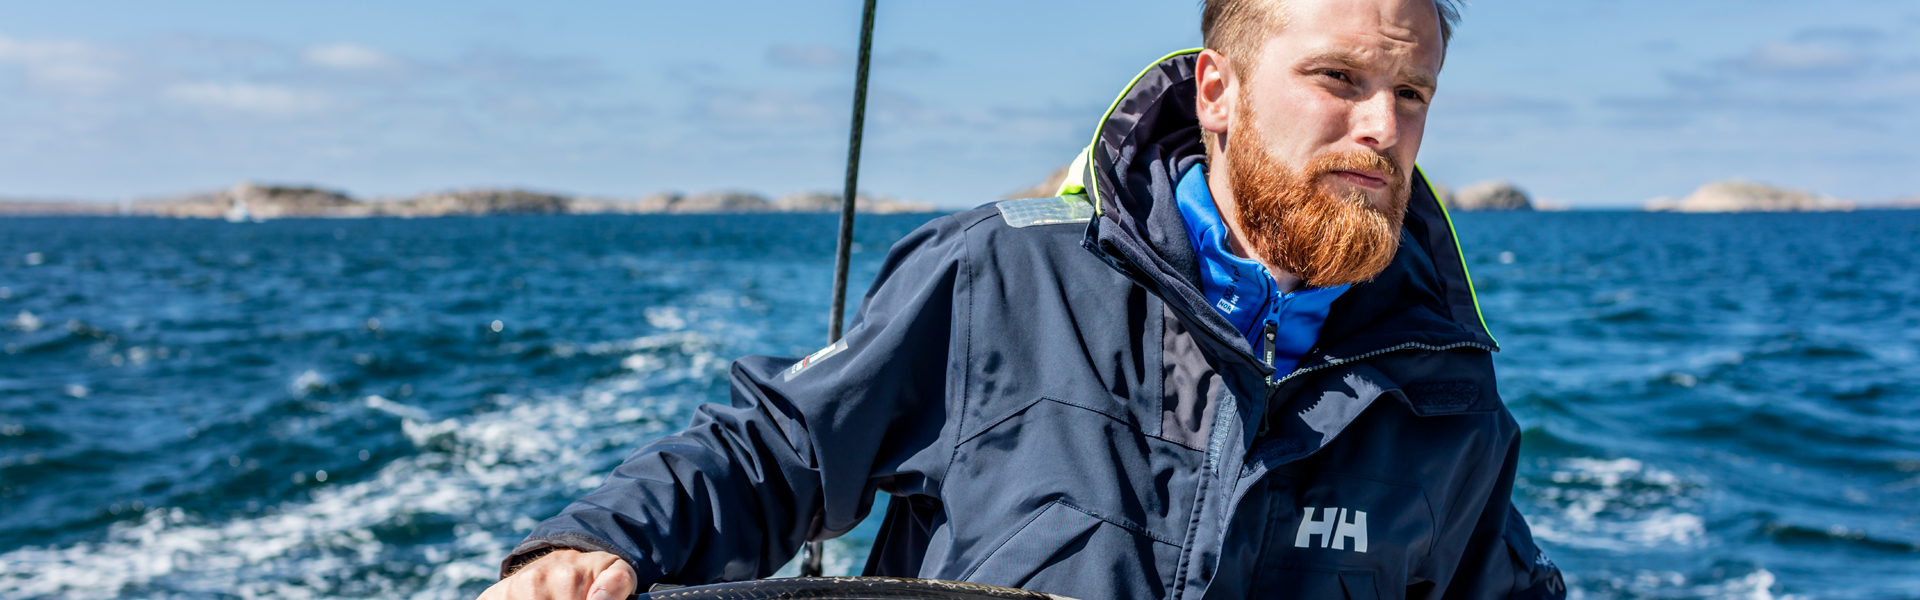 How to select proper Foul Weather Gear